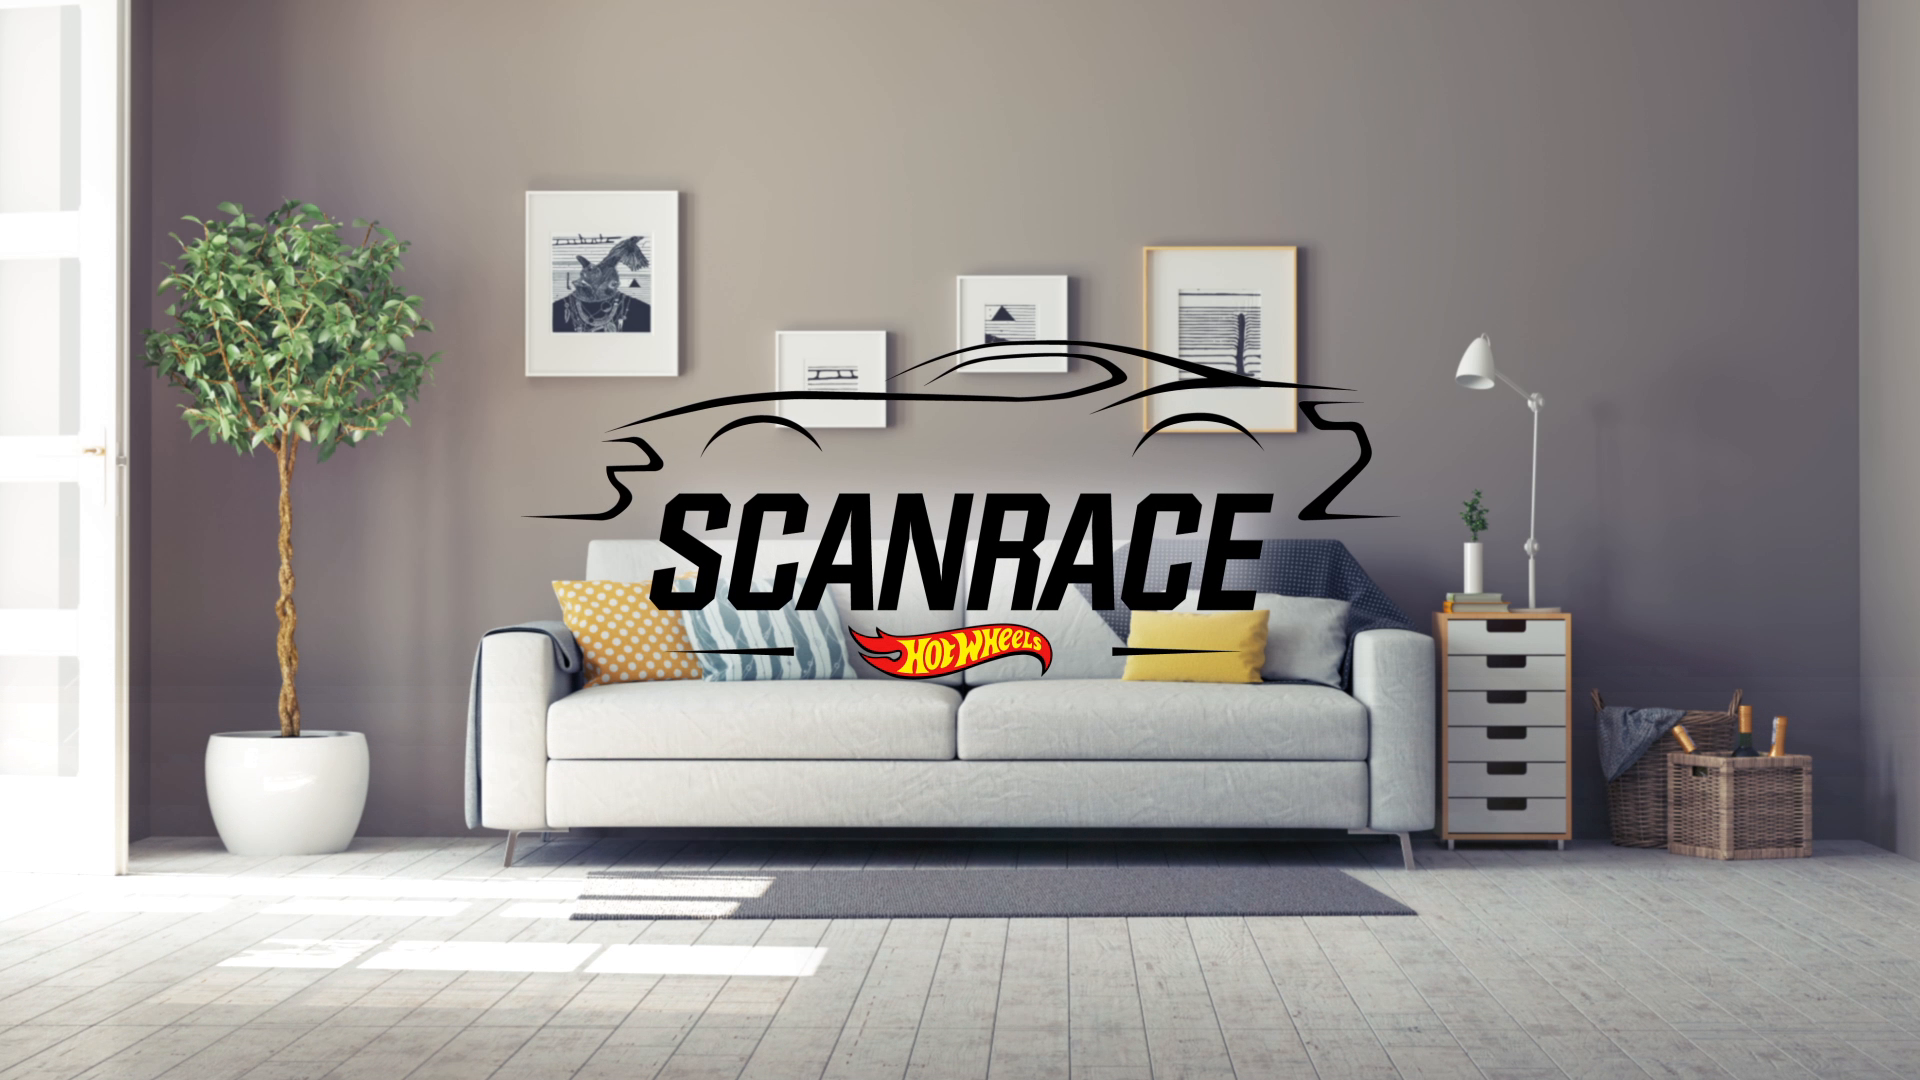 Thumbnail for Hot Wheels ScanRace